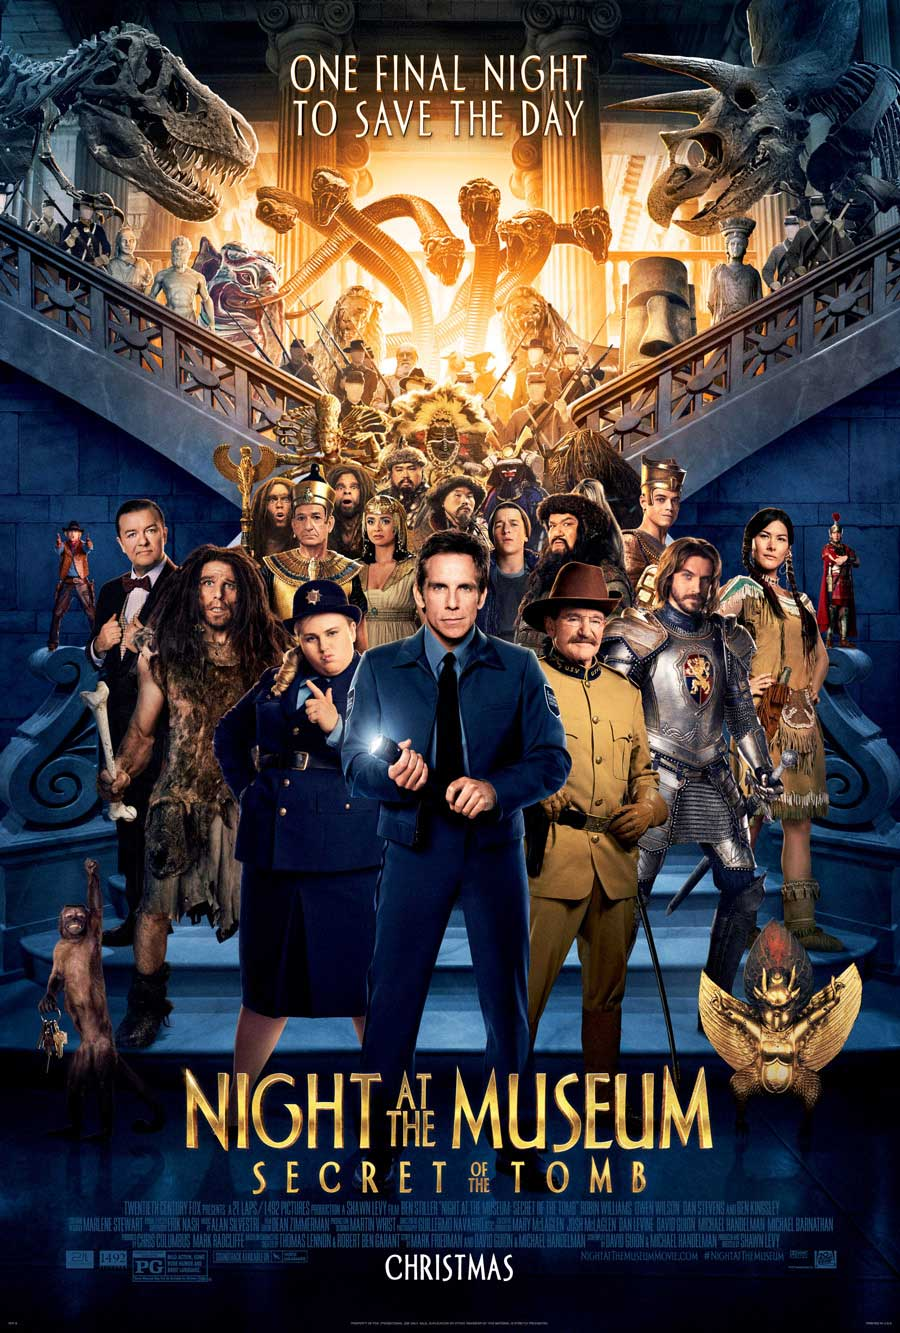 Poster for Night at the Museum: Secret of the Tomb